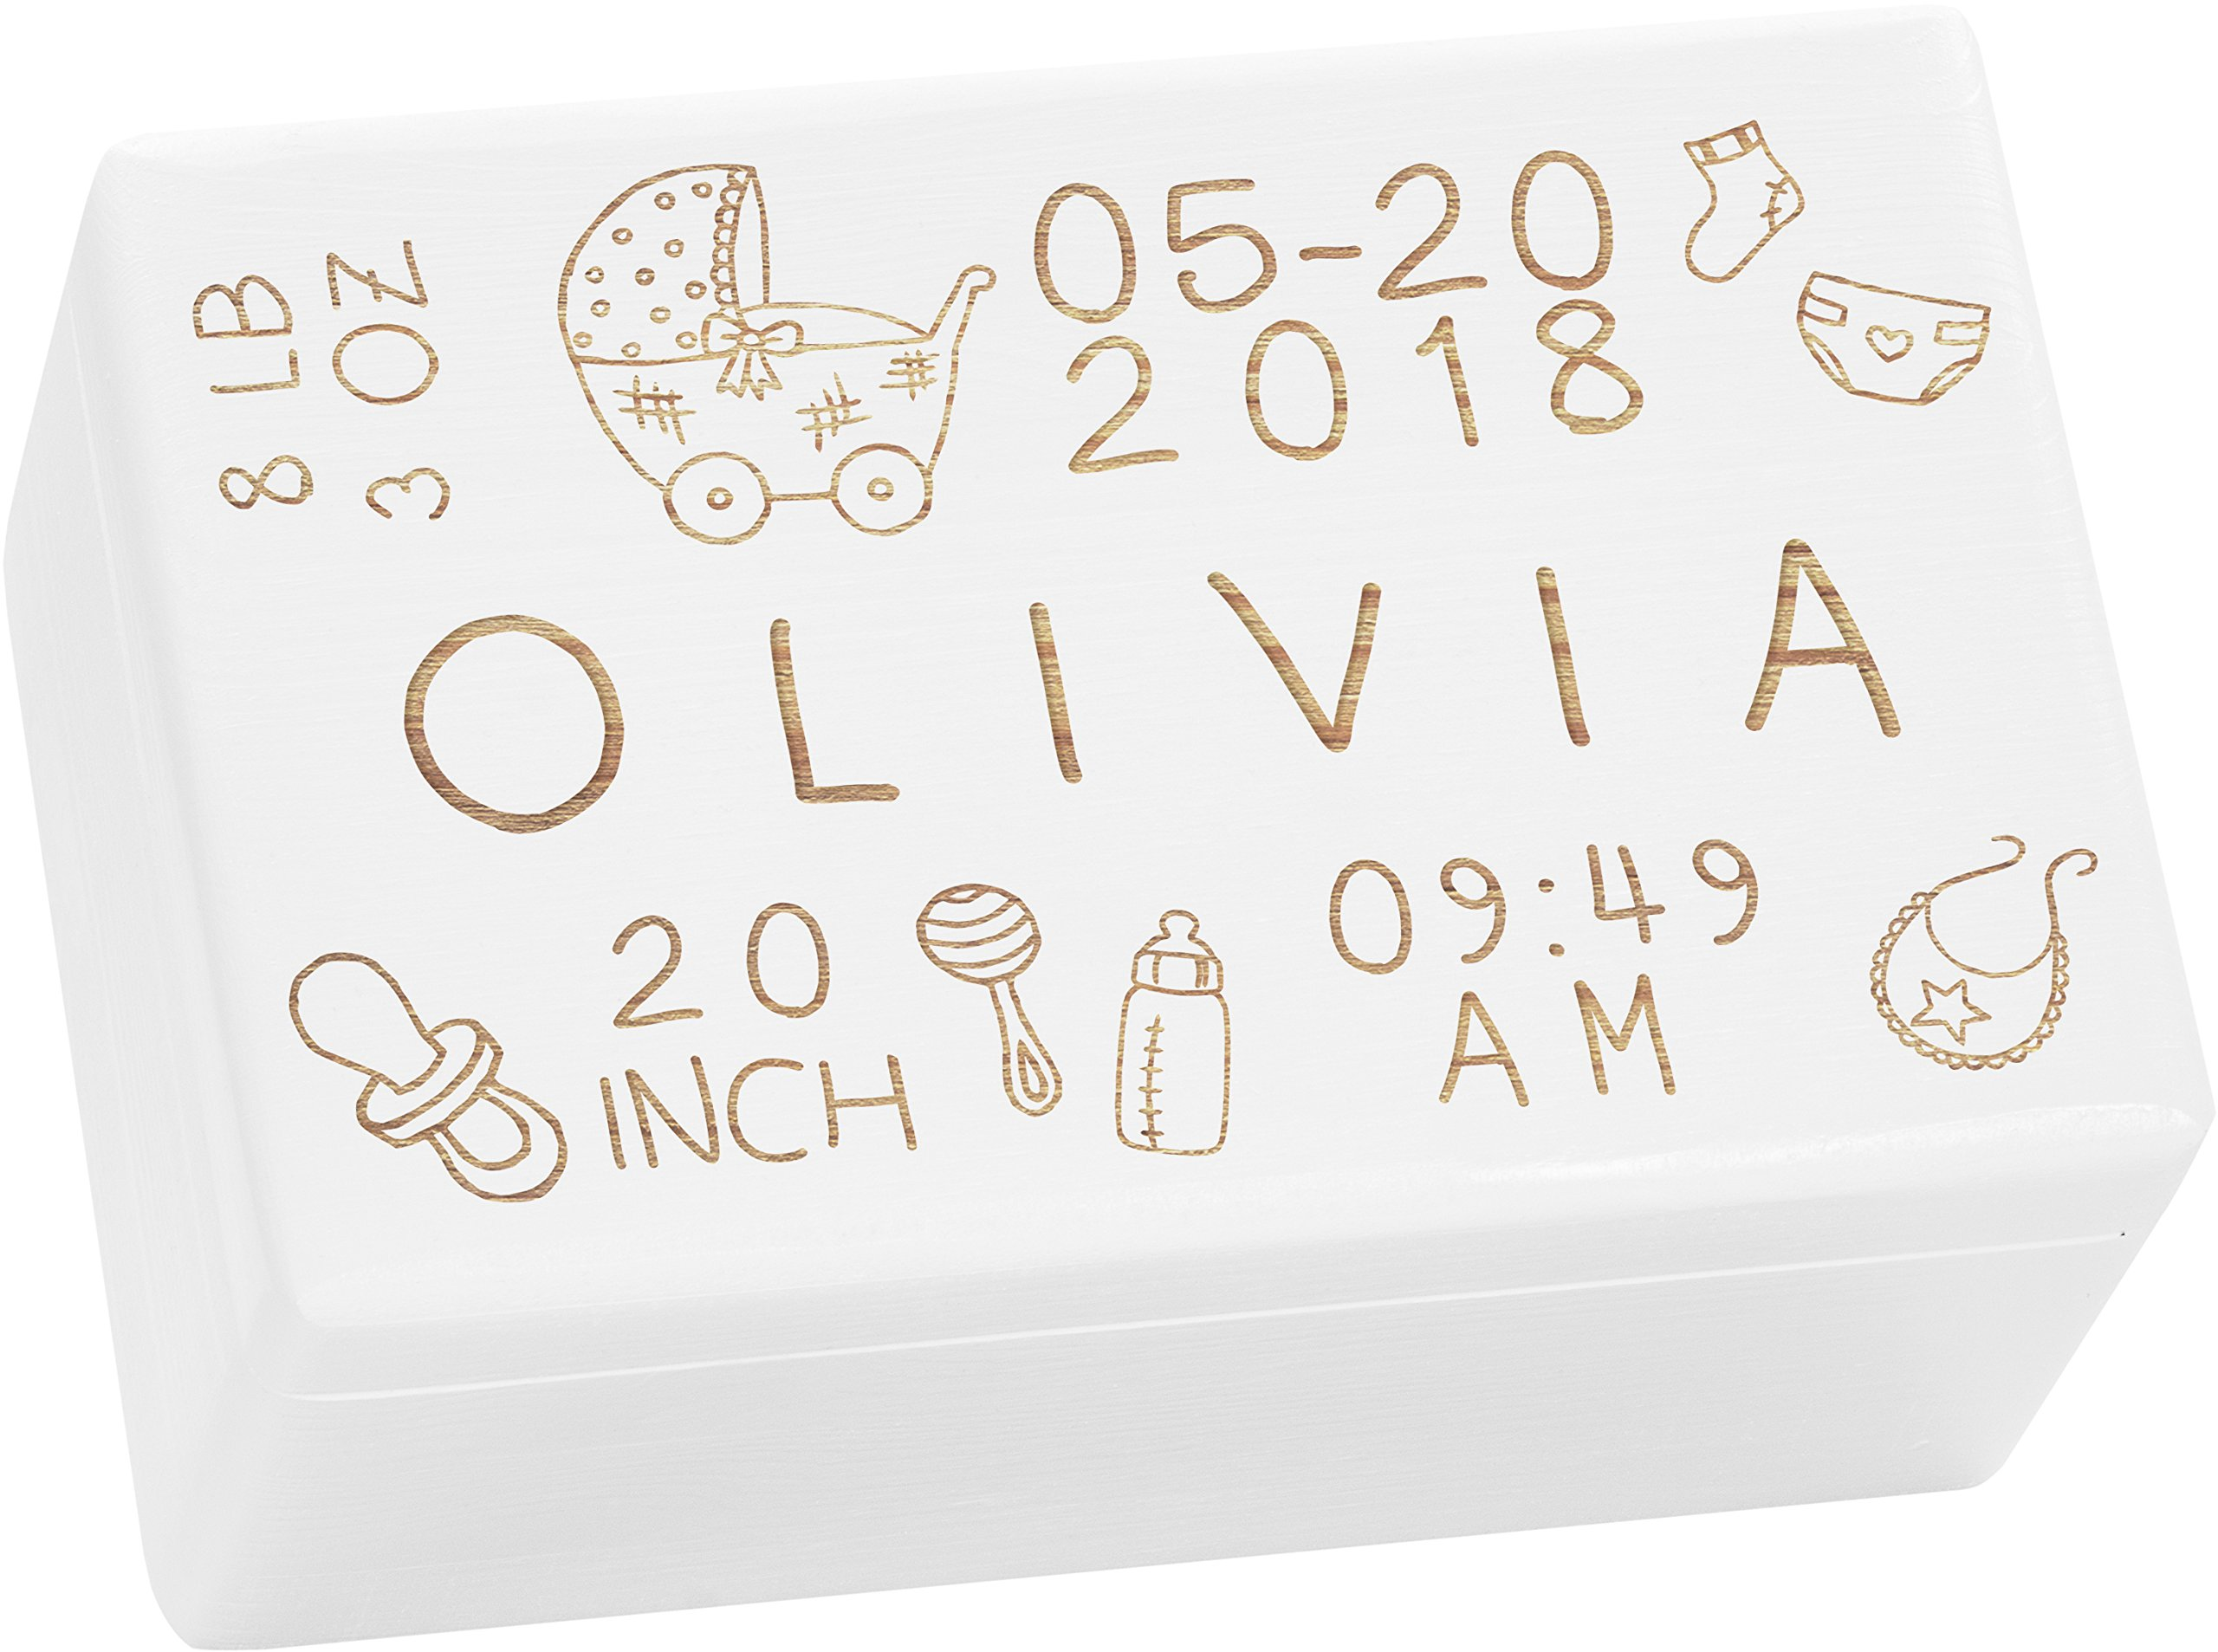 LAUBLUST Engraved Wooden Memory Box - Size L, 12x8x6in - ❤️ Personalized ❤️ Baby Keepsake Box - Rattle Design | Painted White - Made in Germany